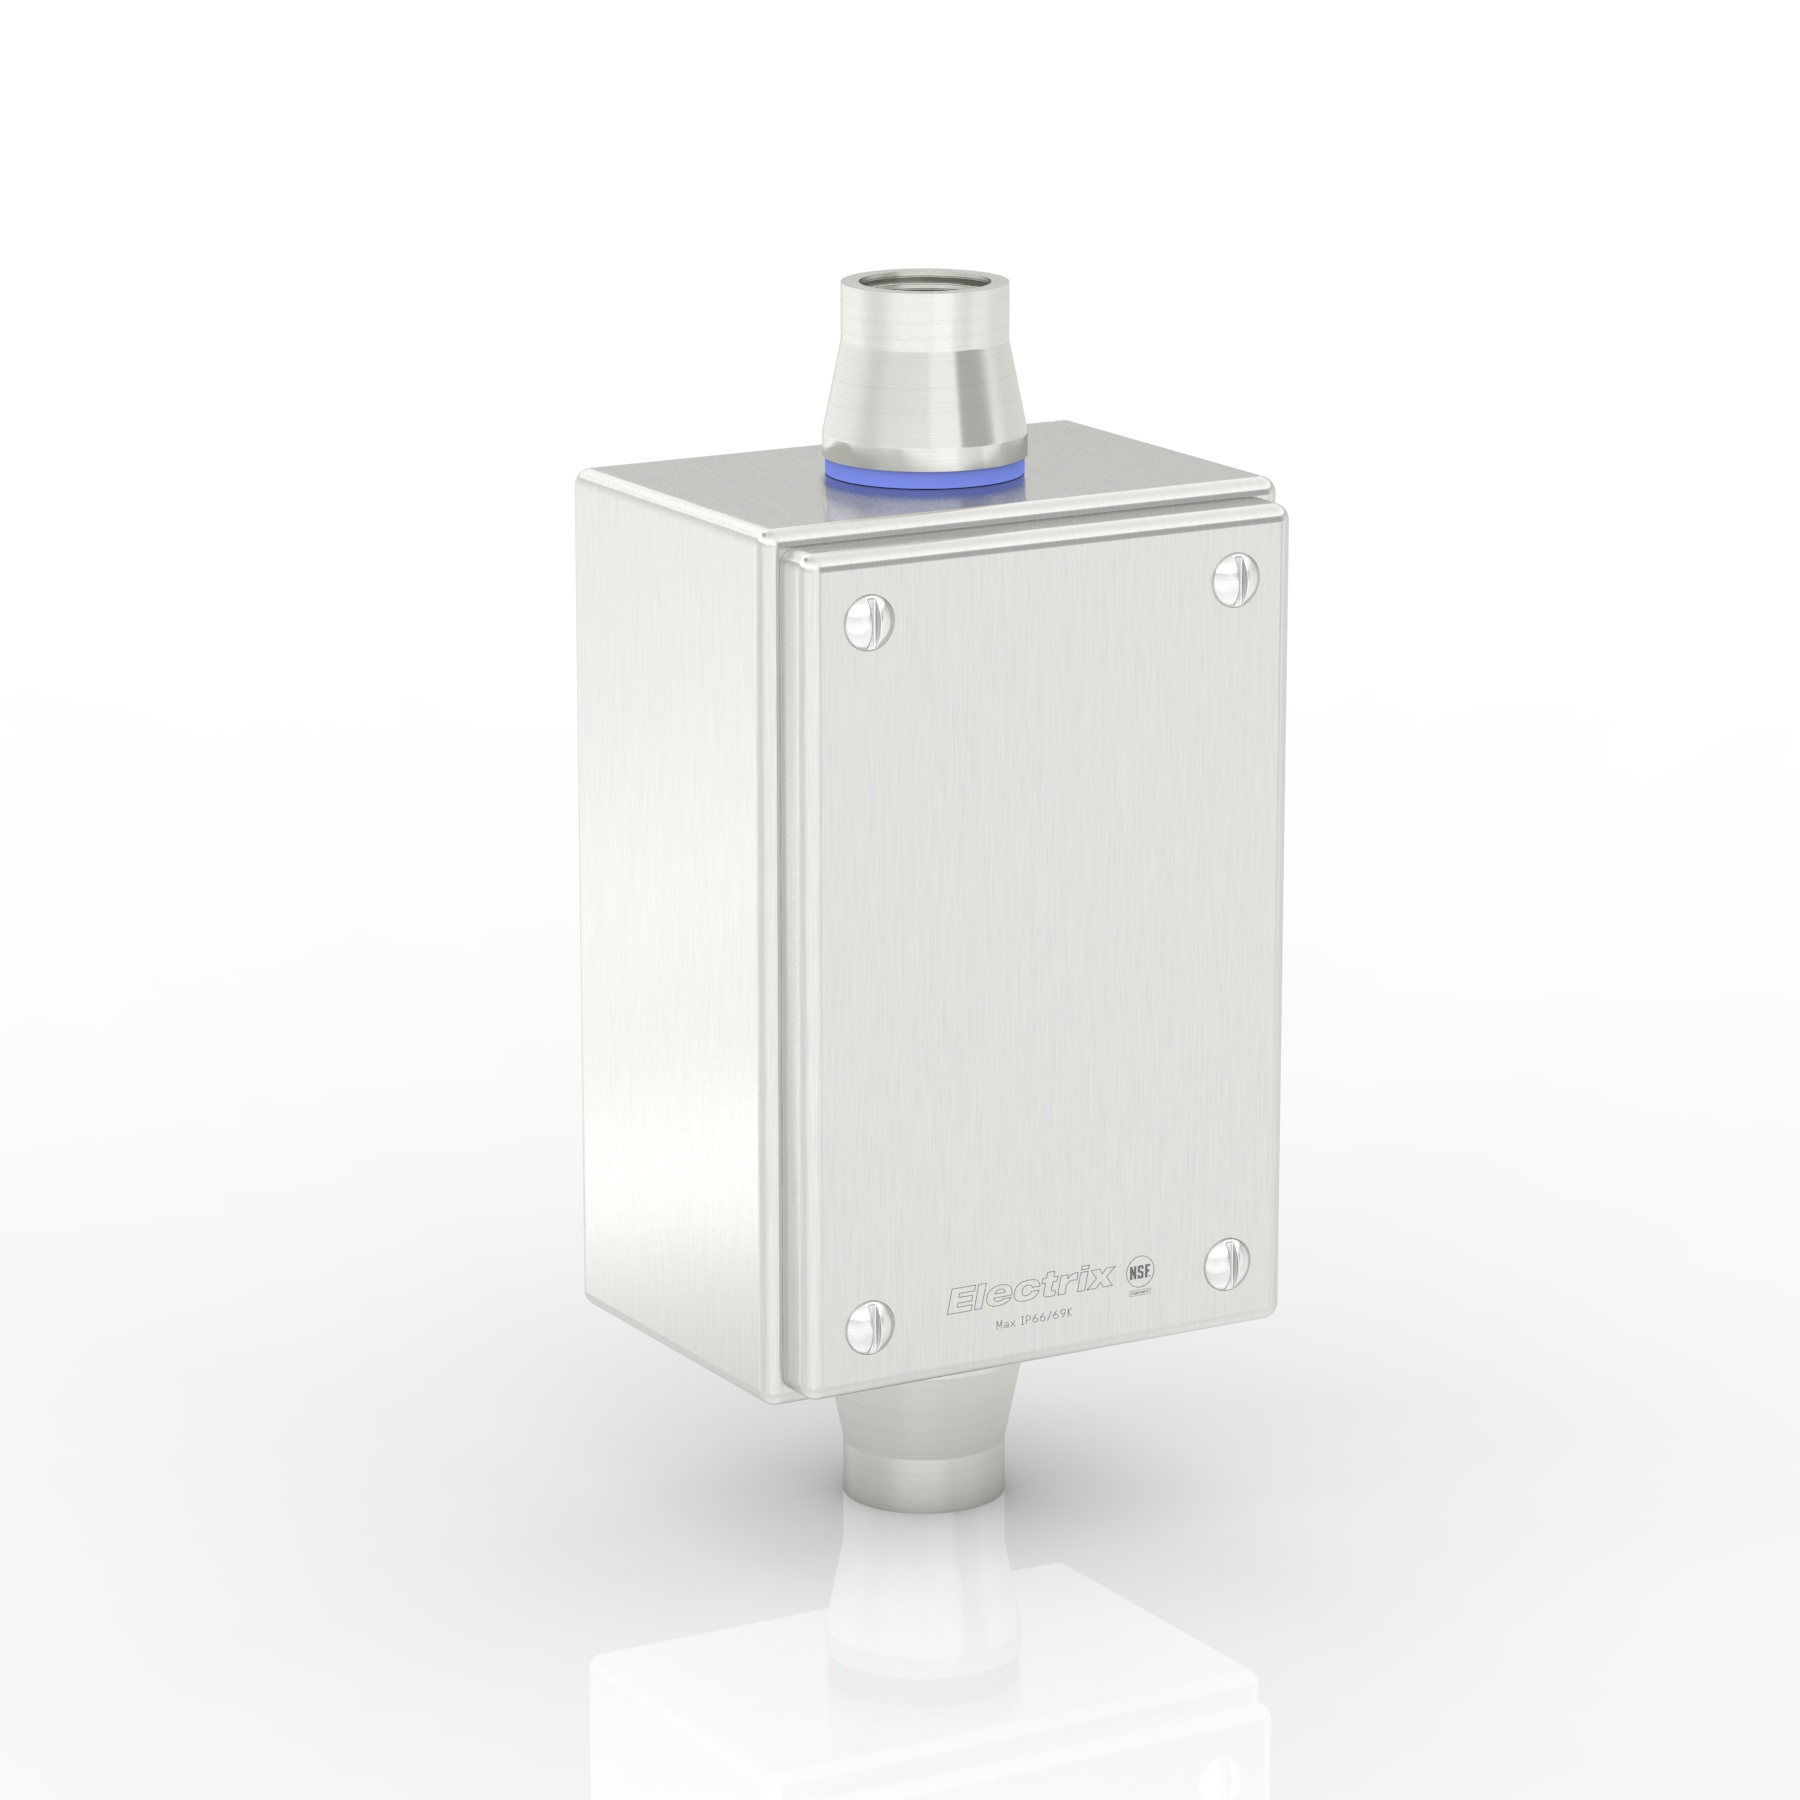 "SL-XTCE-R-C3/4-S316 | WASHDOWNPRO IP69K / Type 4X Slimline Terminal Box (C - Through) with 2 x 3/4"" Ø Holes and Removable Stand-Off Mounting Pillars"